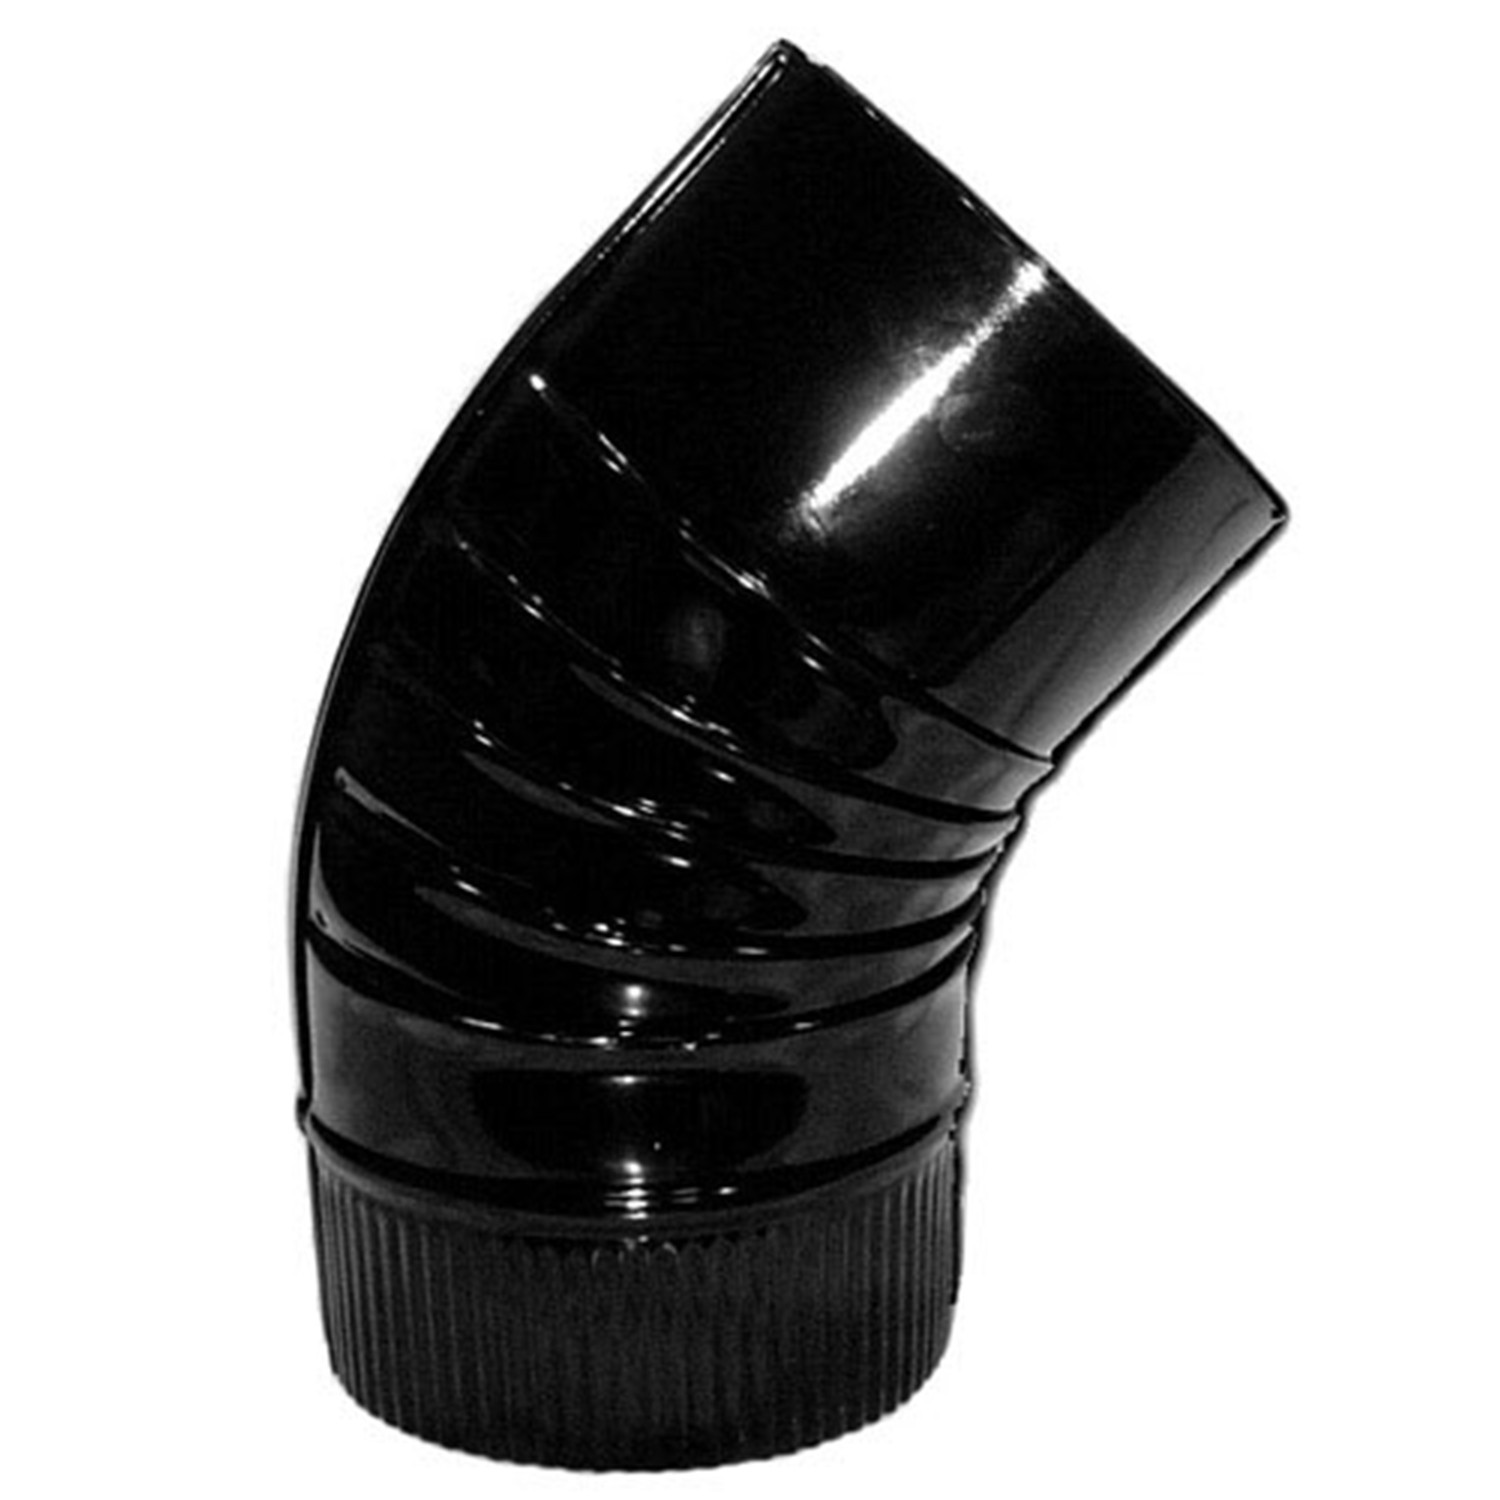 codo-estufa-color-negro-vitrificado-de-175-mm-45